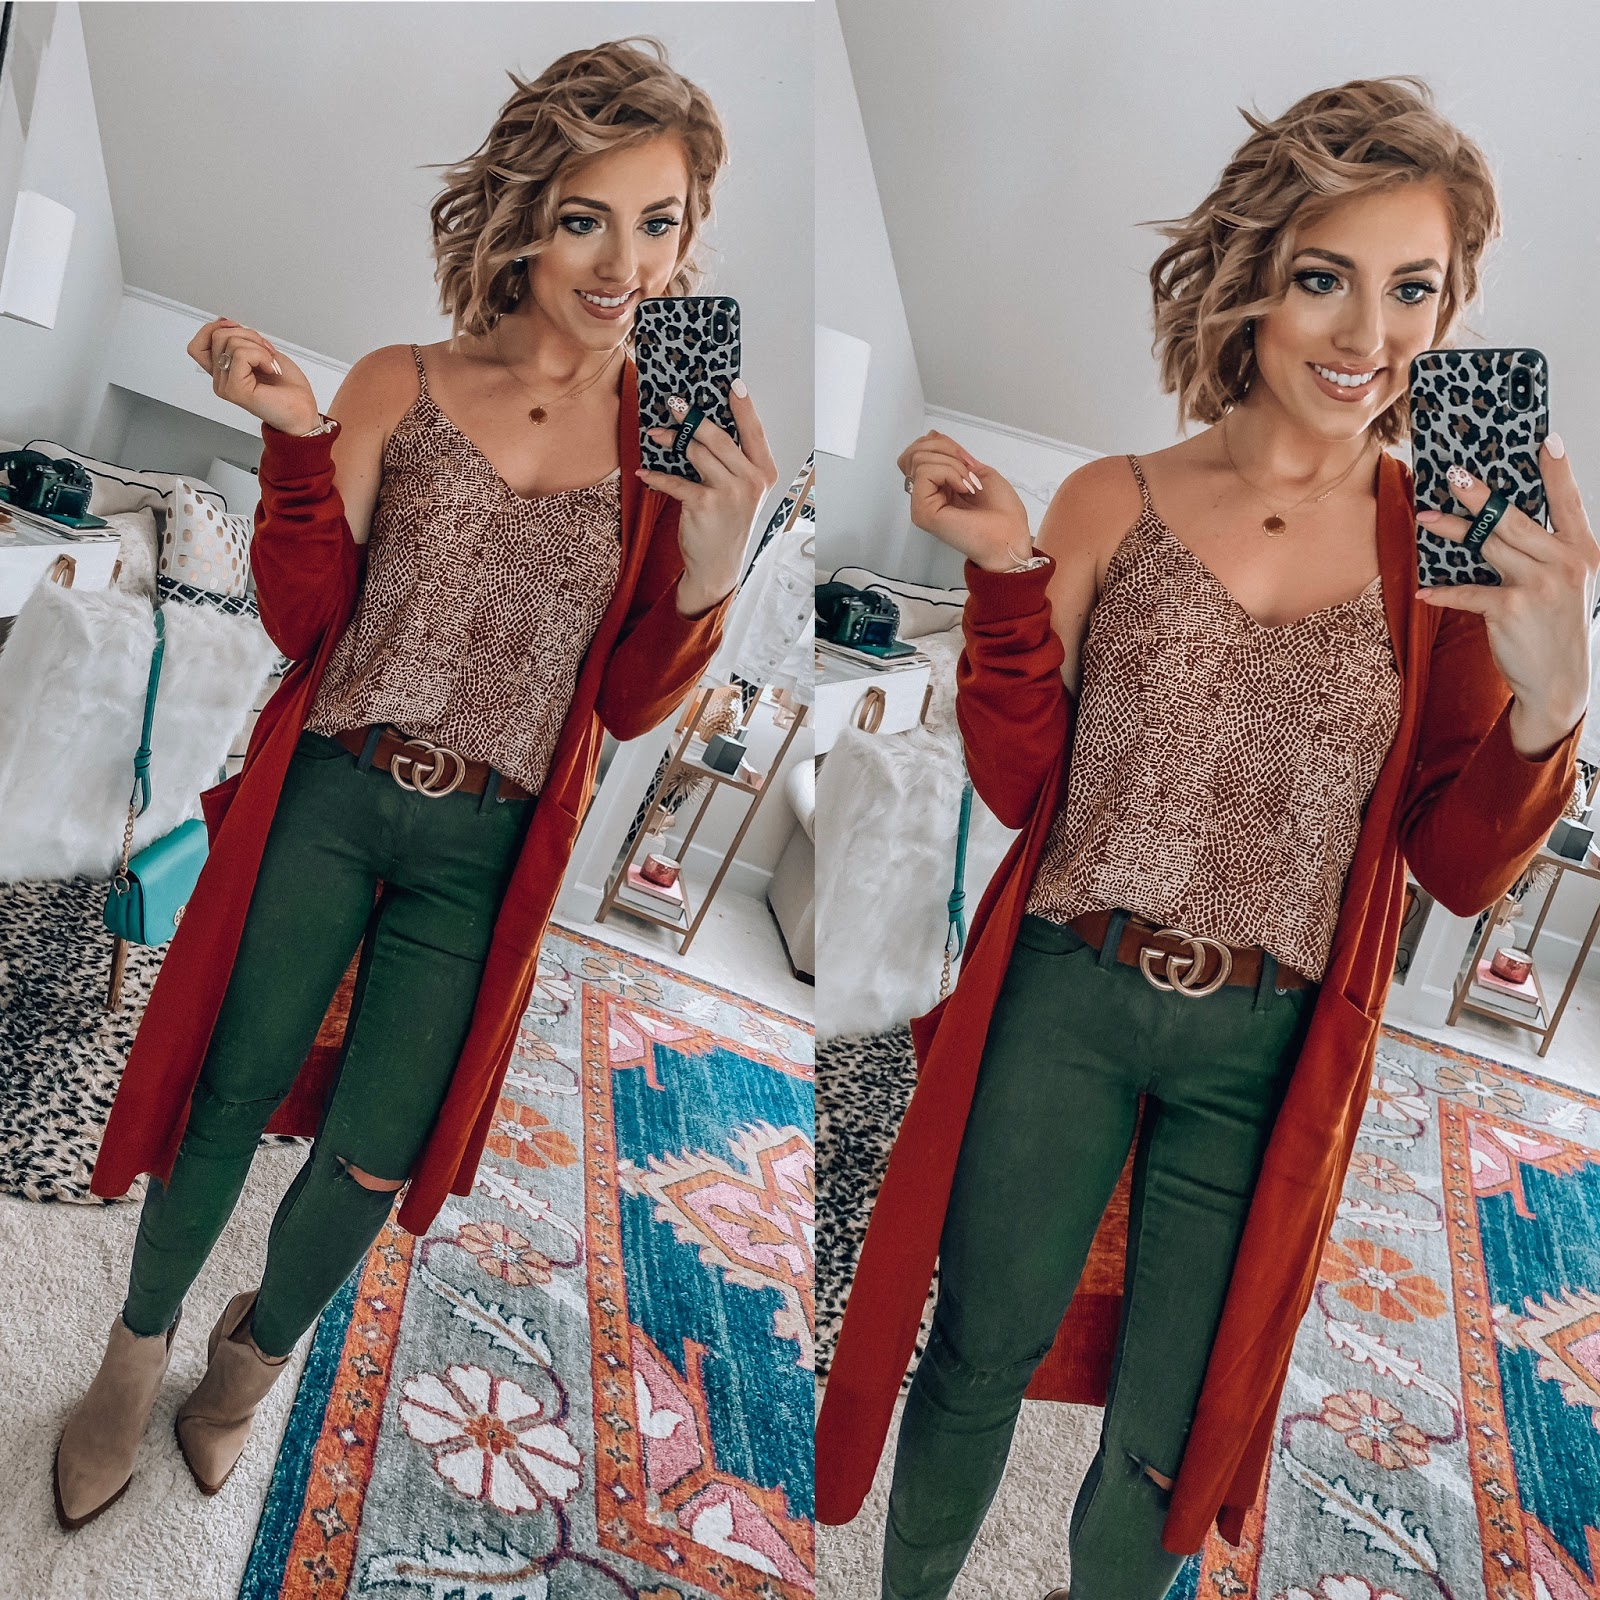 Target Fall Finds: Part One - $17 Snake Cami, $20 Olive Green Jeggings, Under $30 Rust Cardigan - Something Delightful Blog